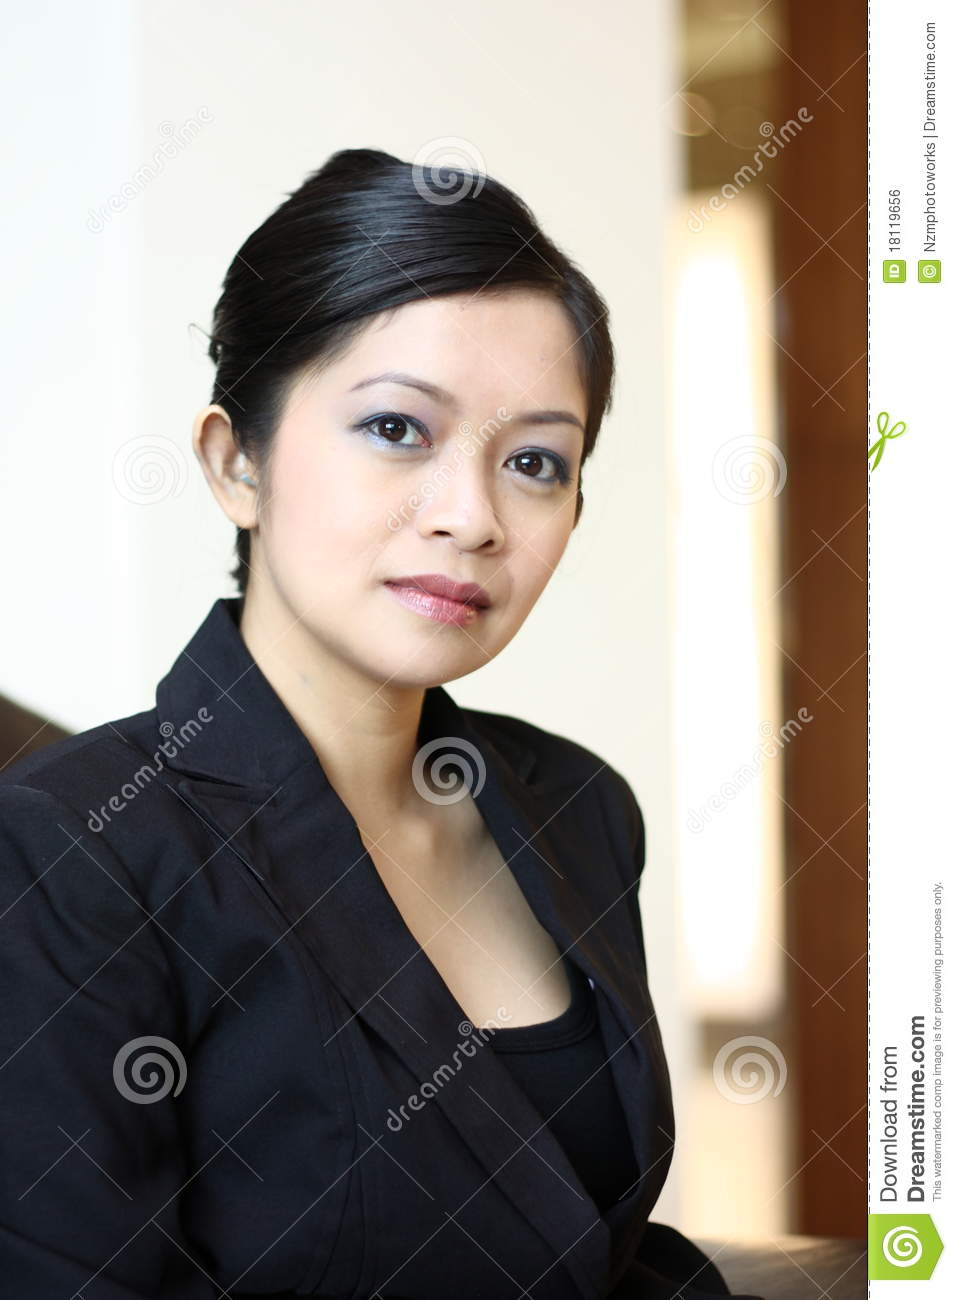 Young Female Executive Royalty Free Stock Image  Image